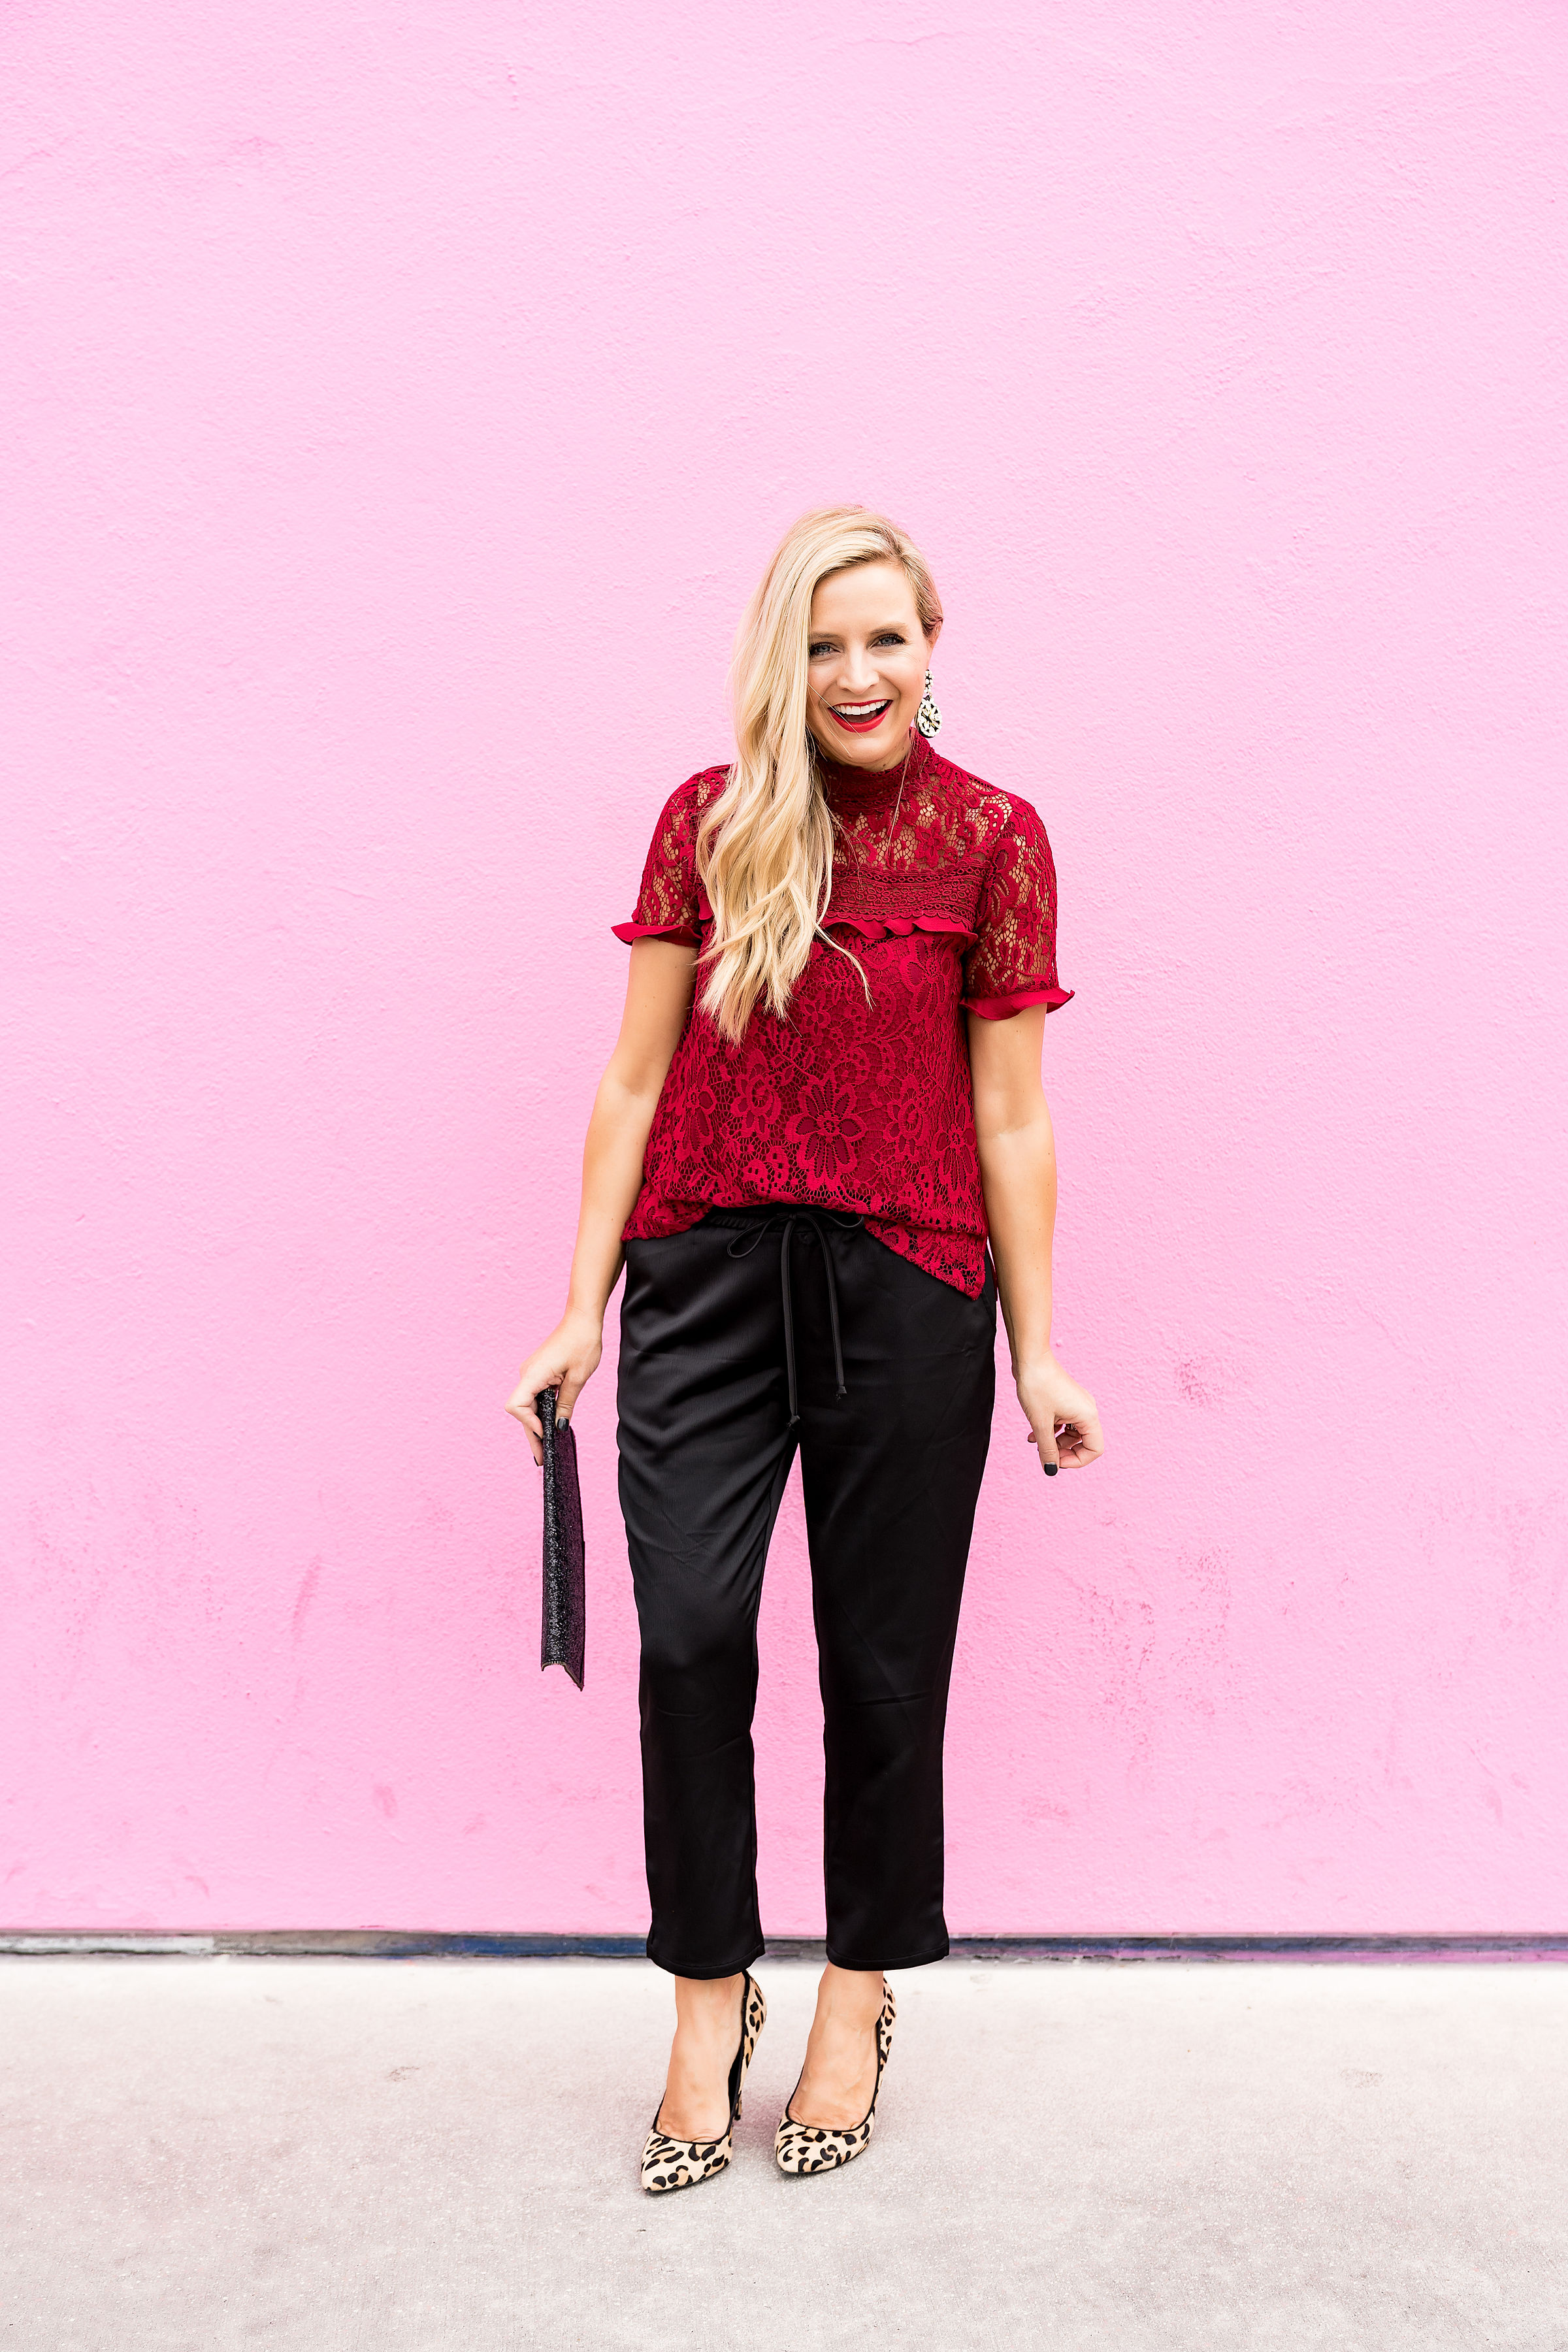 Top Houston fashion blogger, Fancy Ashley, features 7 Holiday Outfits perfect for the season: image of a woman wearing red lace top, black jogger pants, Kate Spade earrings, glitter clutch and sam Edelman leopard pumps all available at Nordstrom